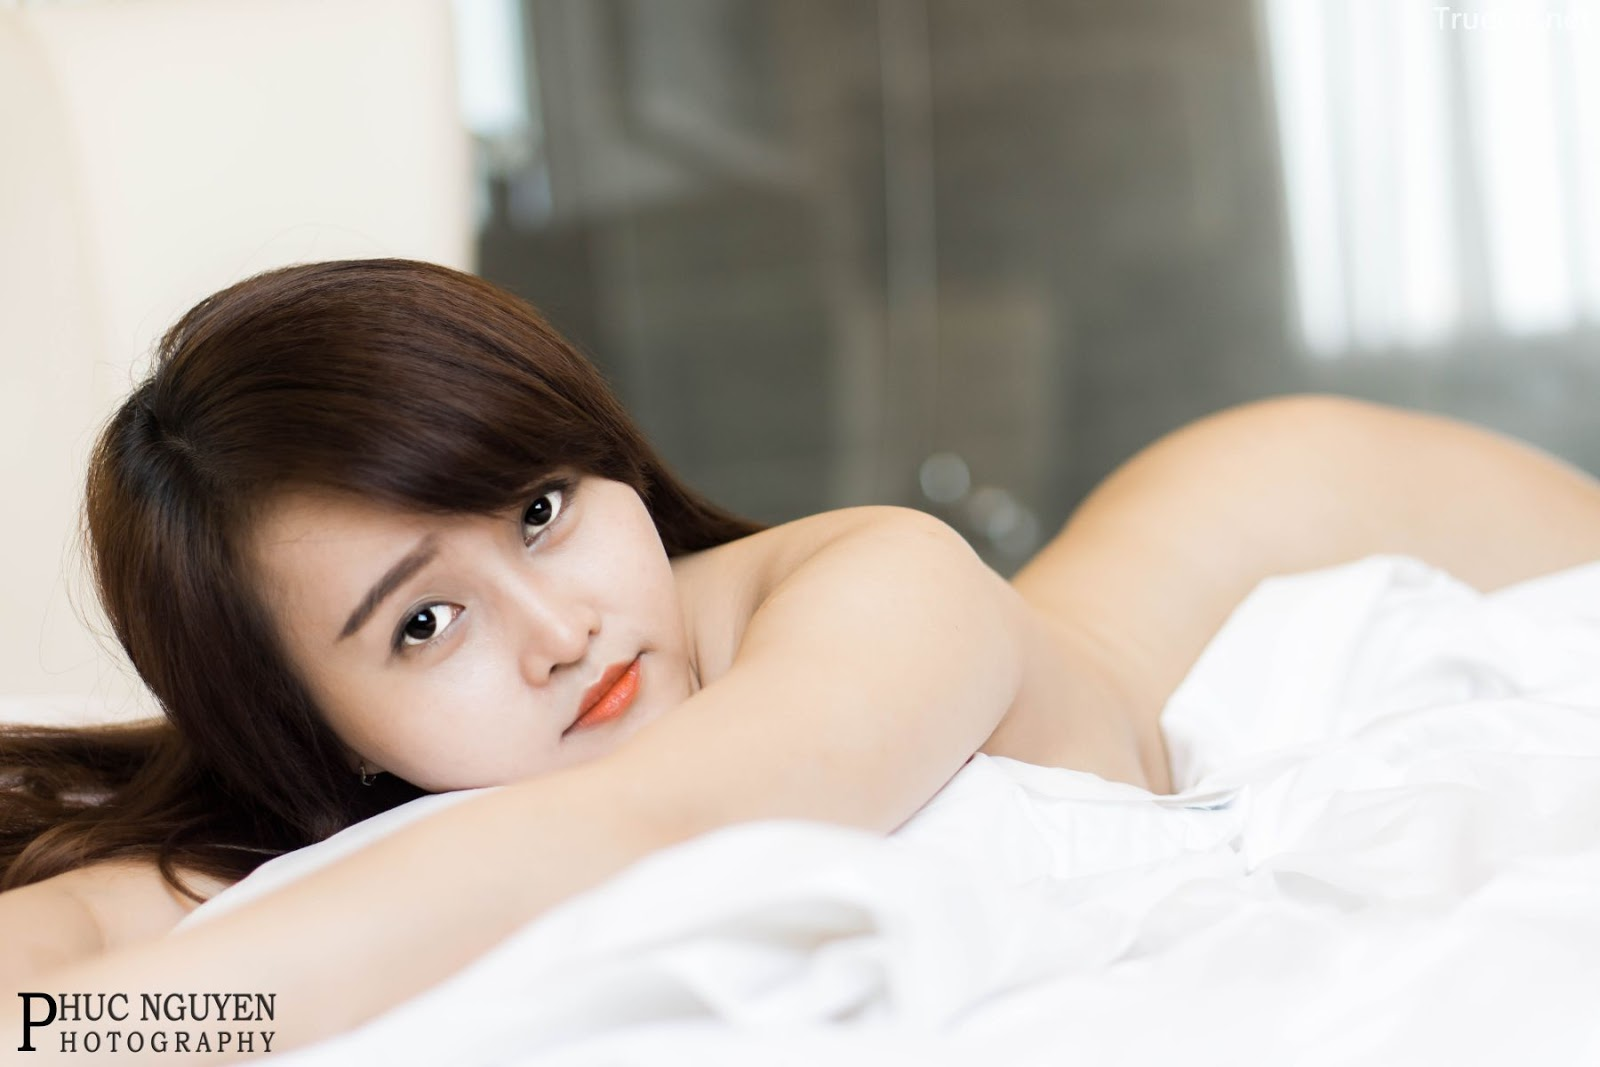 Super hot photos of Vietnamese beauties with lingerie and bikini - Photo by Le Blanc Studio - Part 5 - Picture 1